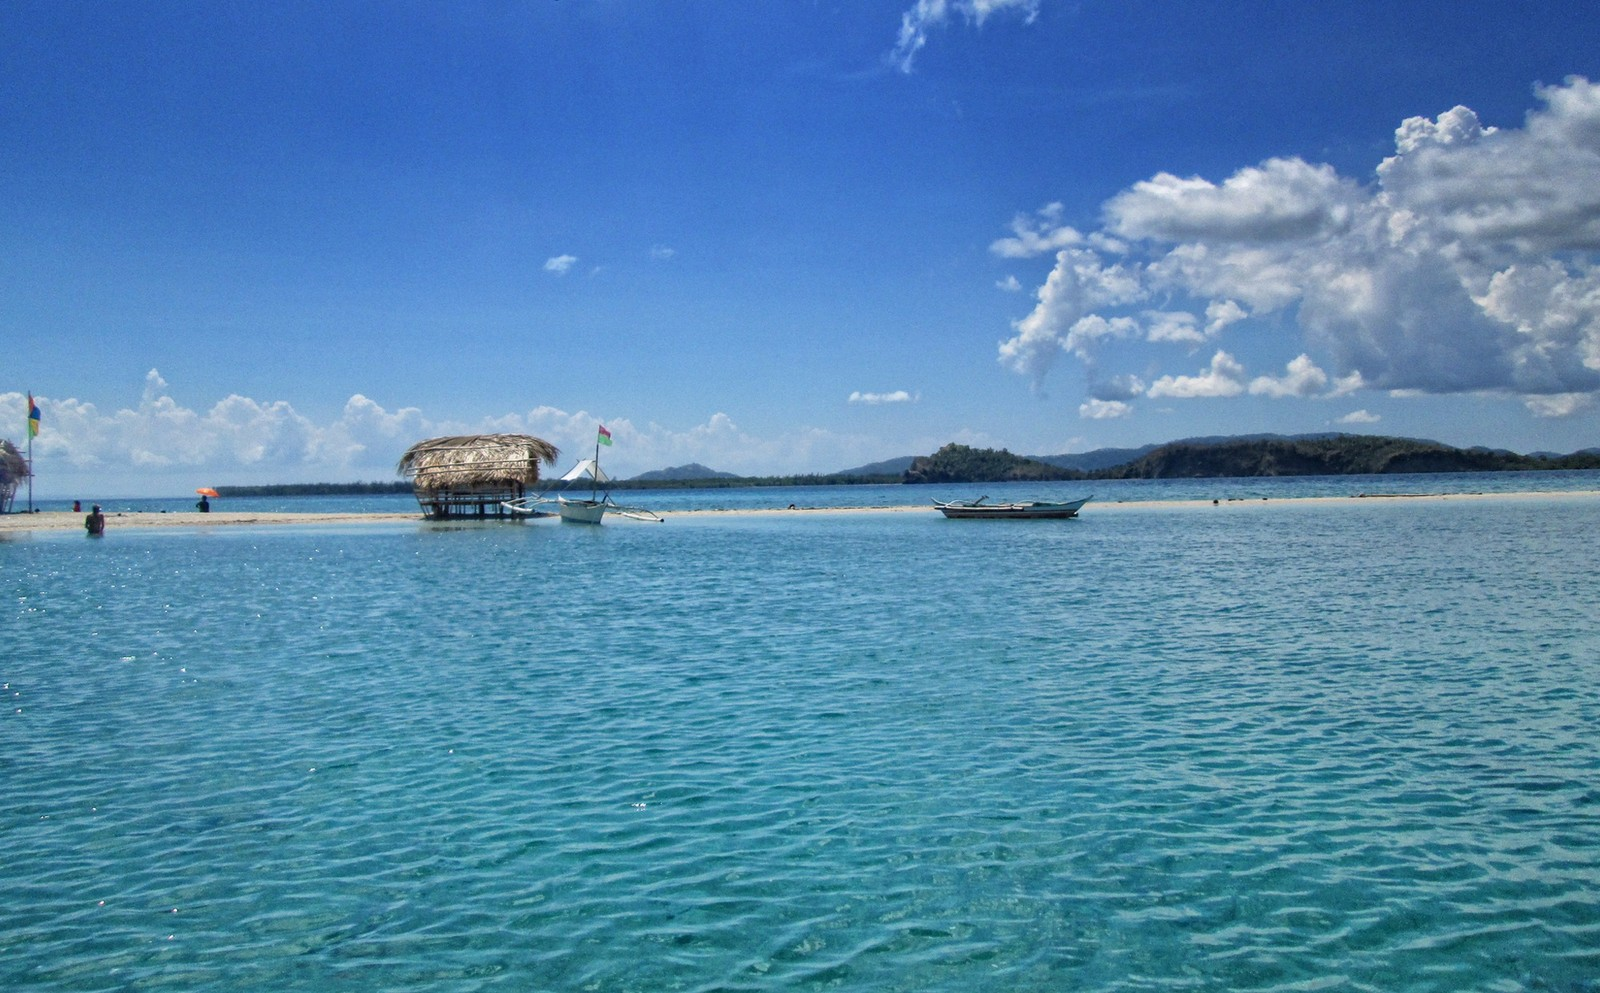 CLEAR WATERS OF JACUPAN Island